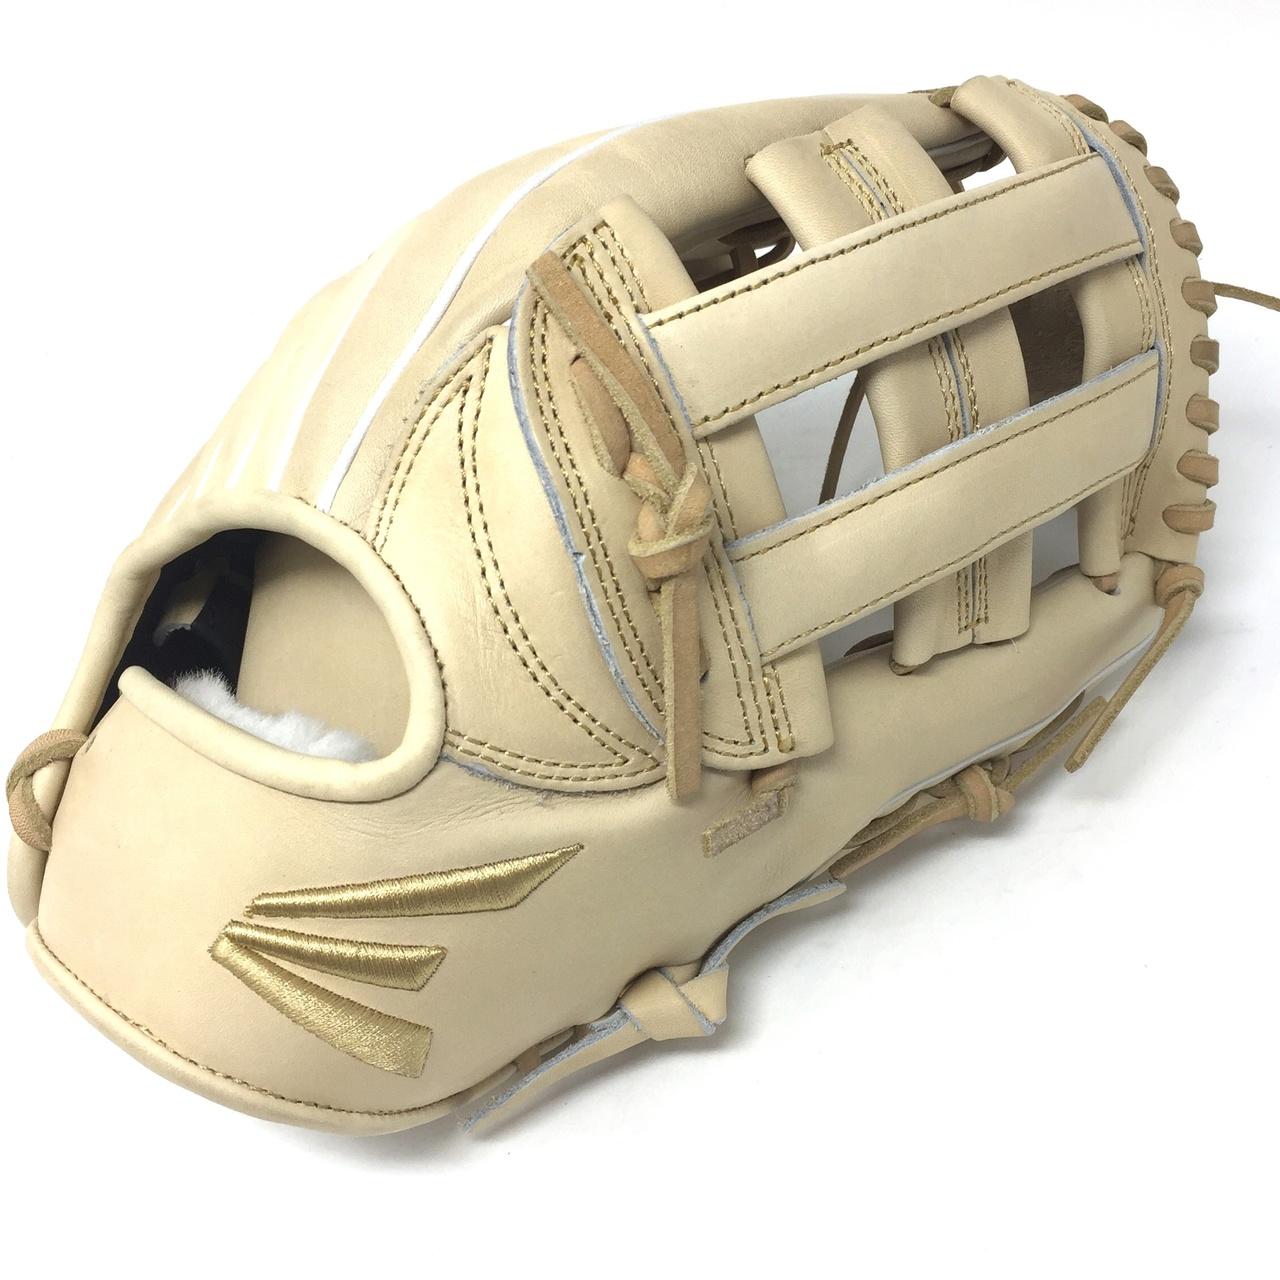 Easton's Small Batch project focuses on ball glove development using only premium leathers, unique designs and exceptional materials. Easton's passionate pursuit of superior craftsmanship allows them to innovate and experiment collaboratively with world-renowned tanneries and master pattern makers.